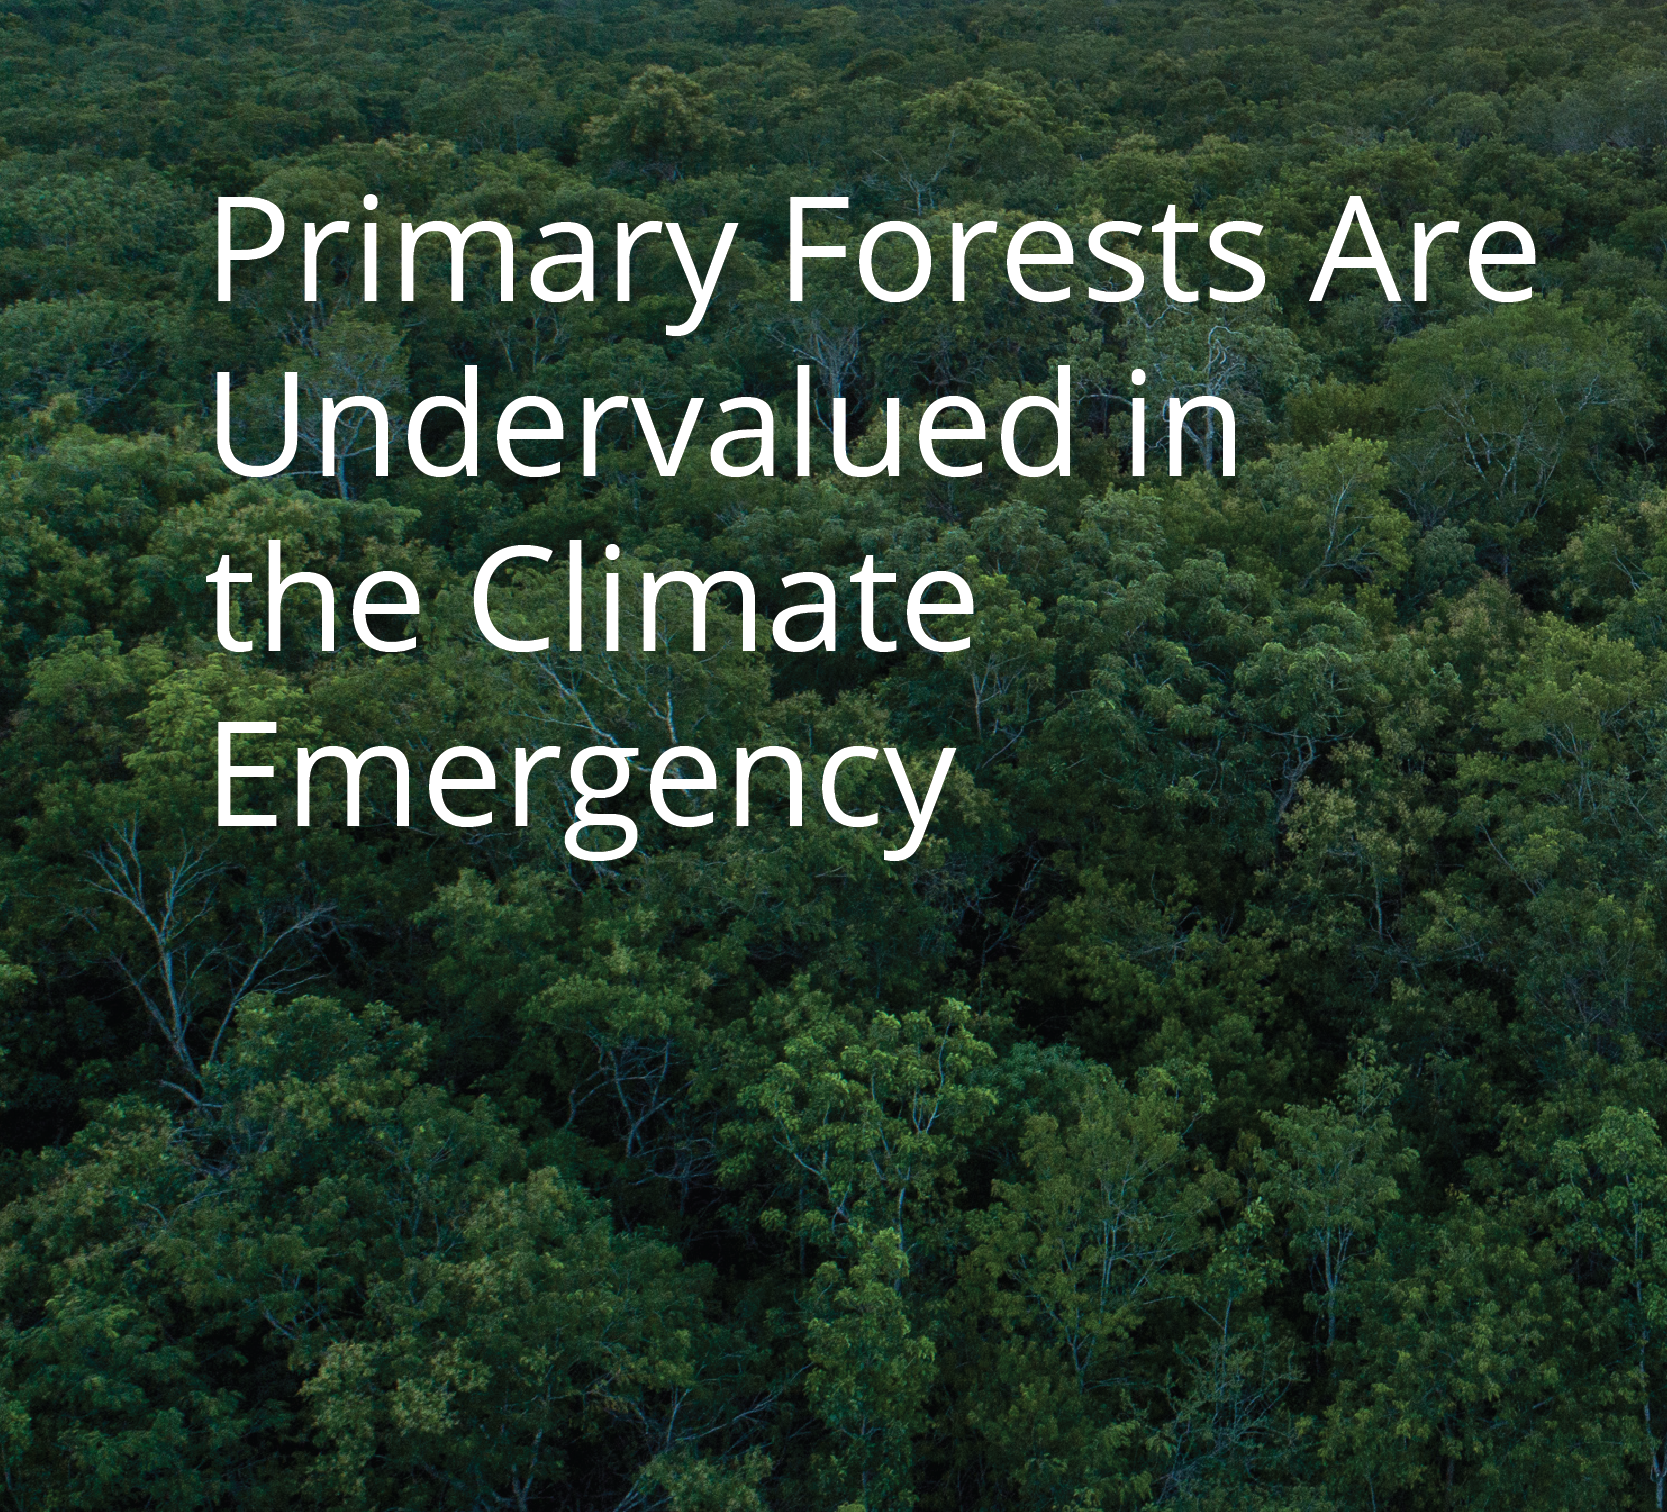 Primary Forests Are Undervalued in the Climate Emergency